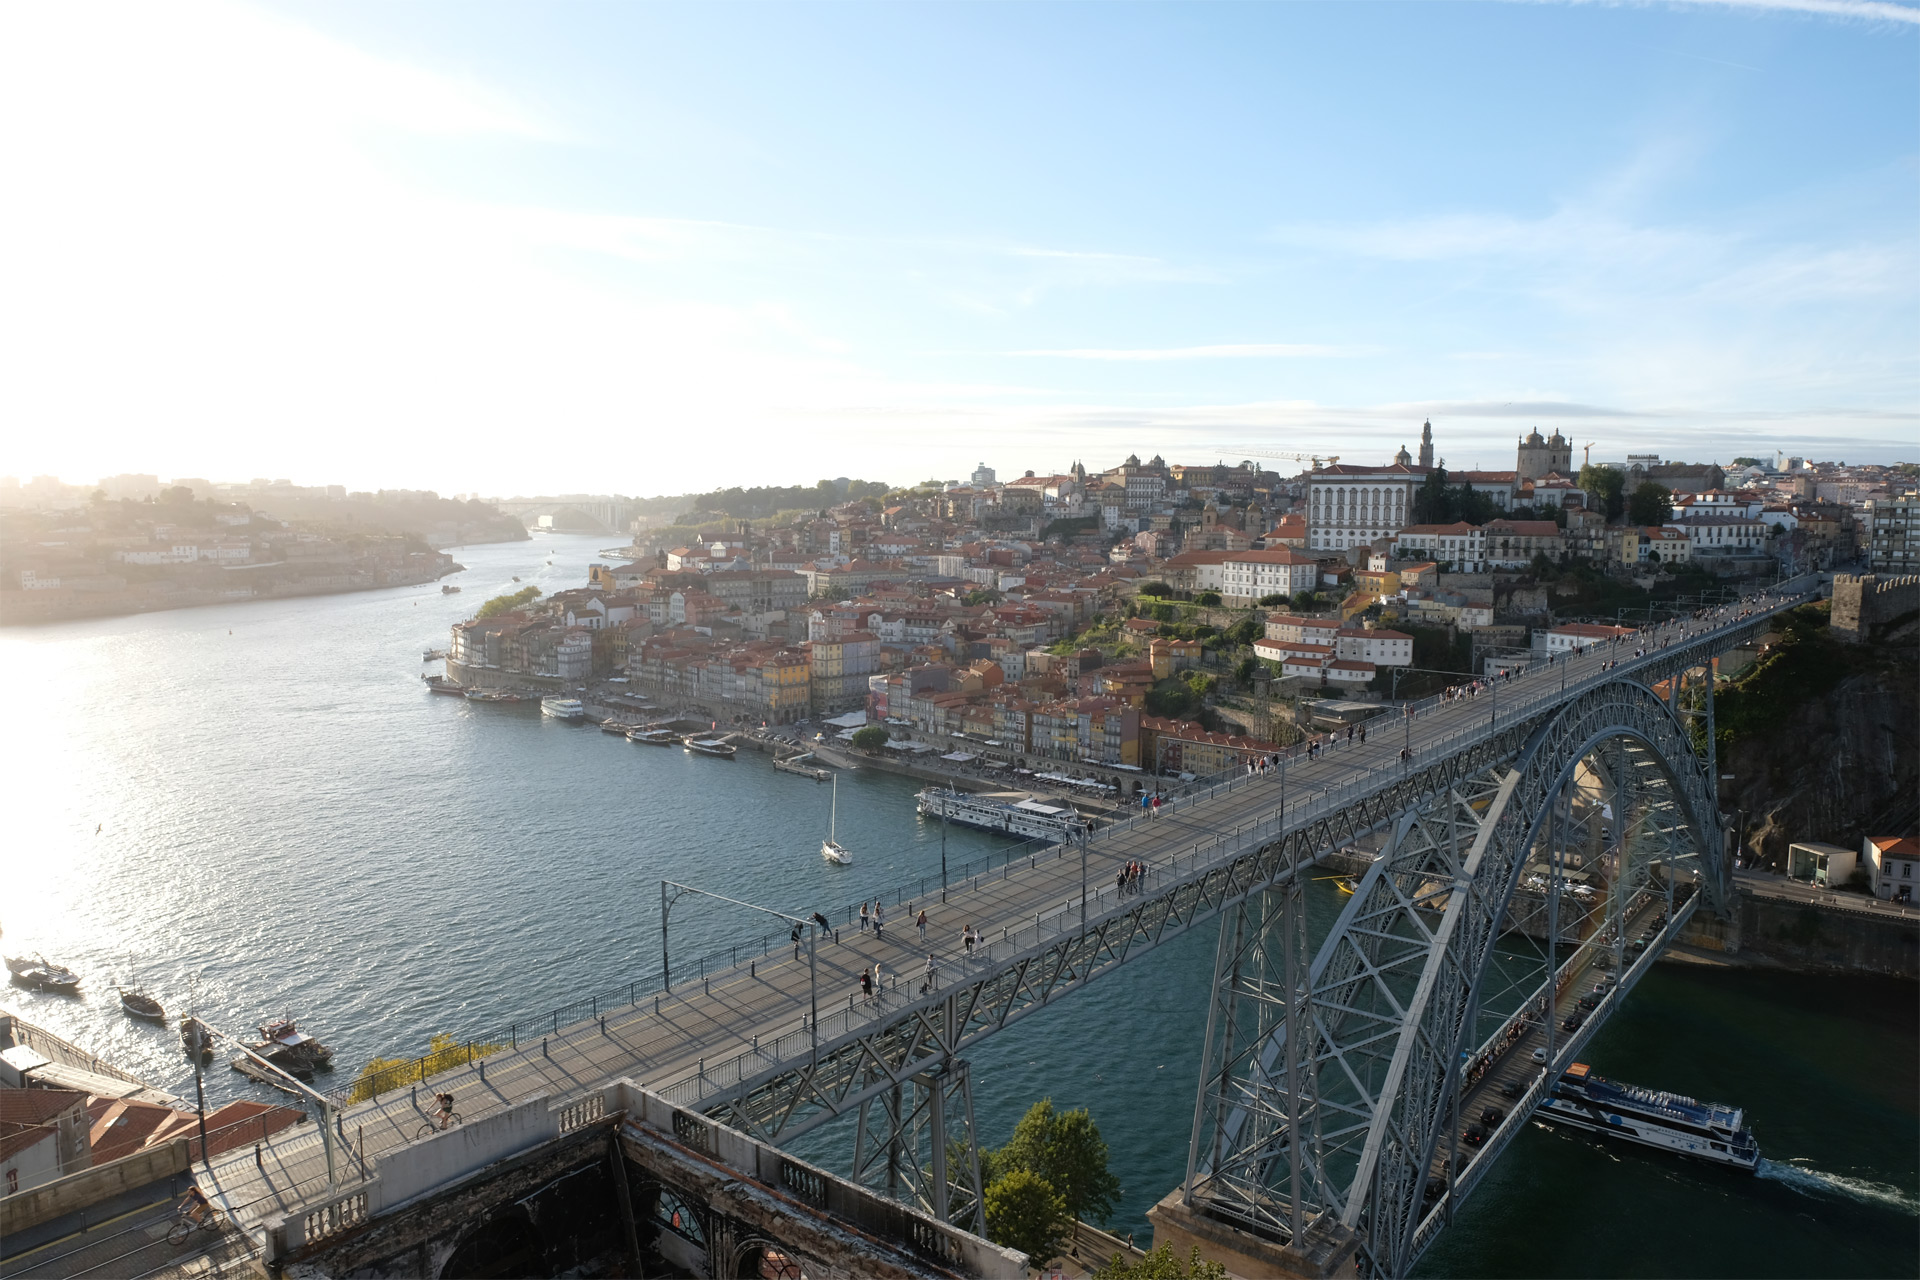 Porto #1 (Dom Luís I Bridge) / Travel, Show the Original, Portugal, Porto, Fujinon XF 16-55mm f/2.8, Fujifilm X-T2 [porto 1 o 1]